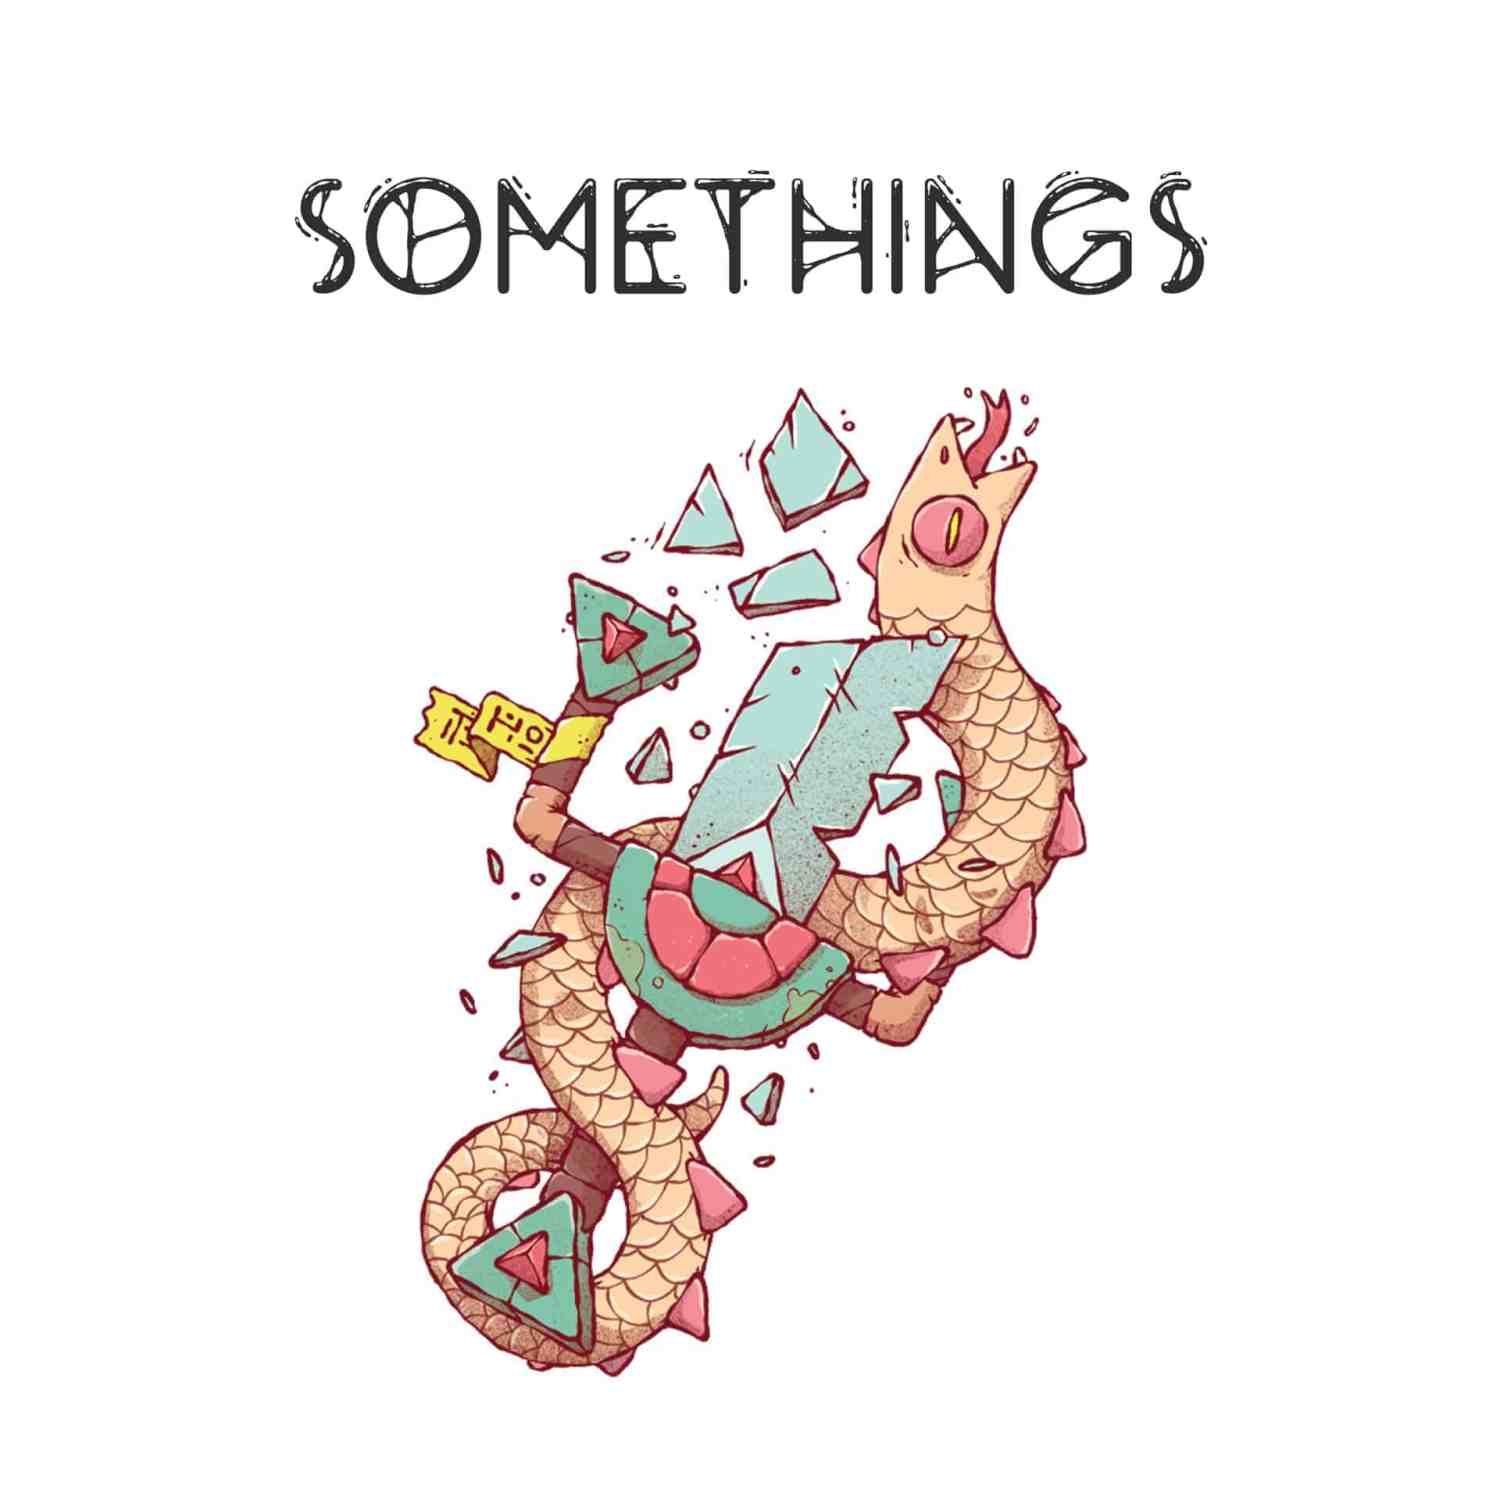 SOMETHINGS